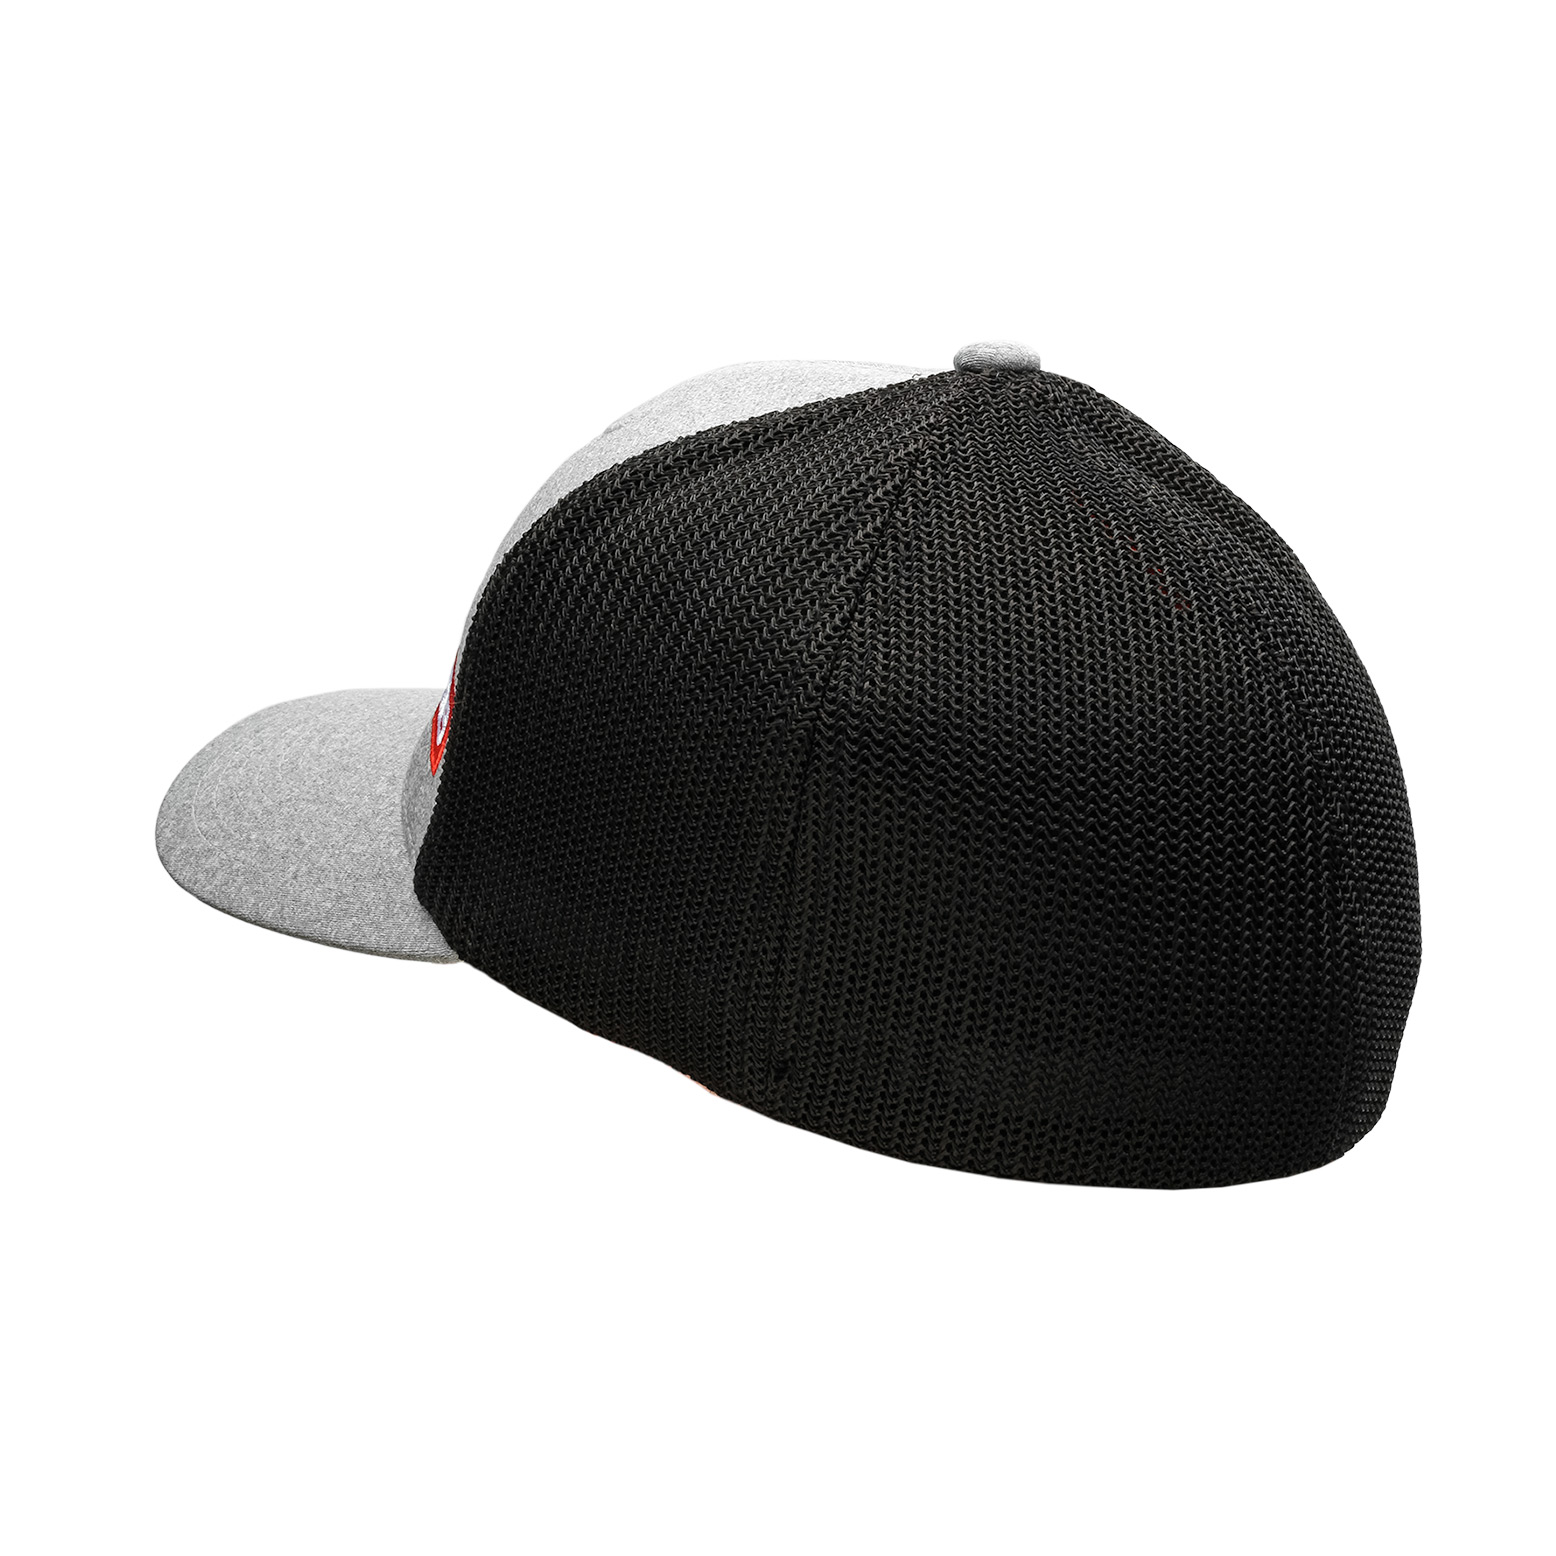 COBB Tuning Mesh 2-Tone Stretch Cap - Heather/Black